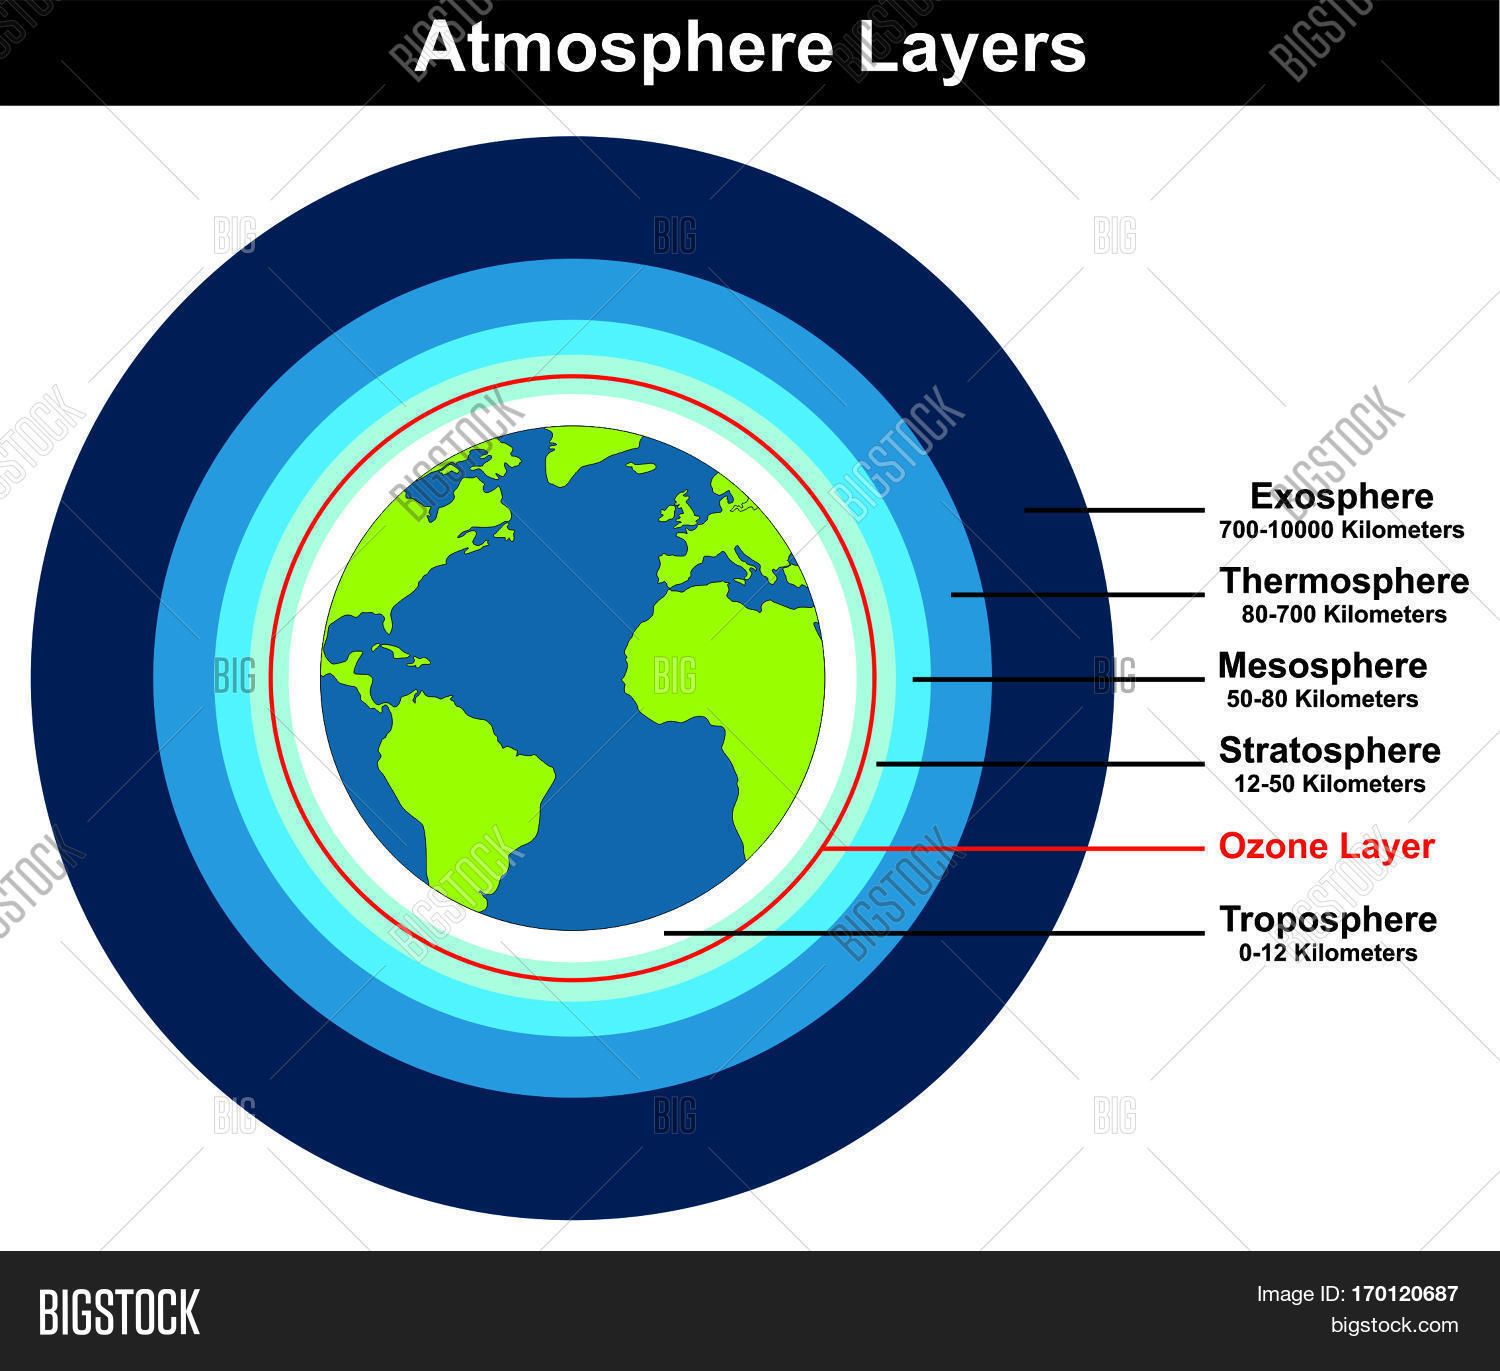 Atmosphere Layers Image Amp Photo Free Trial